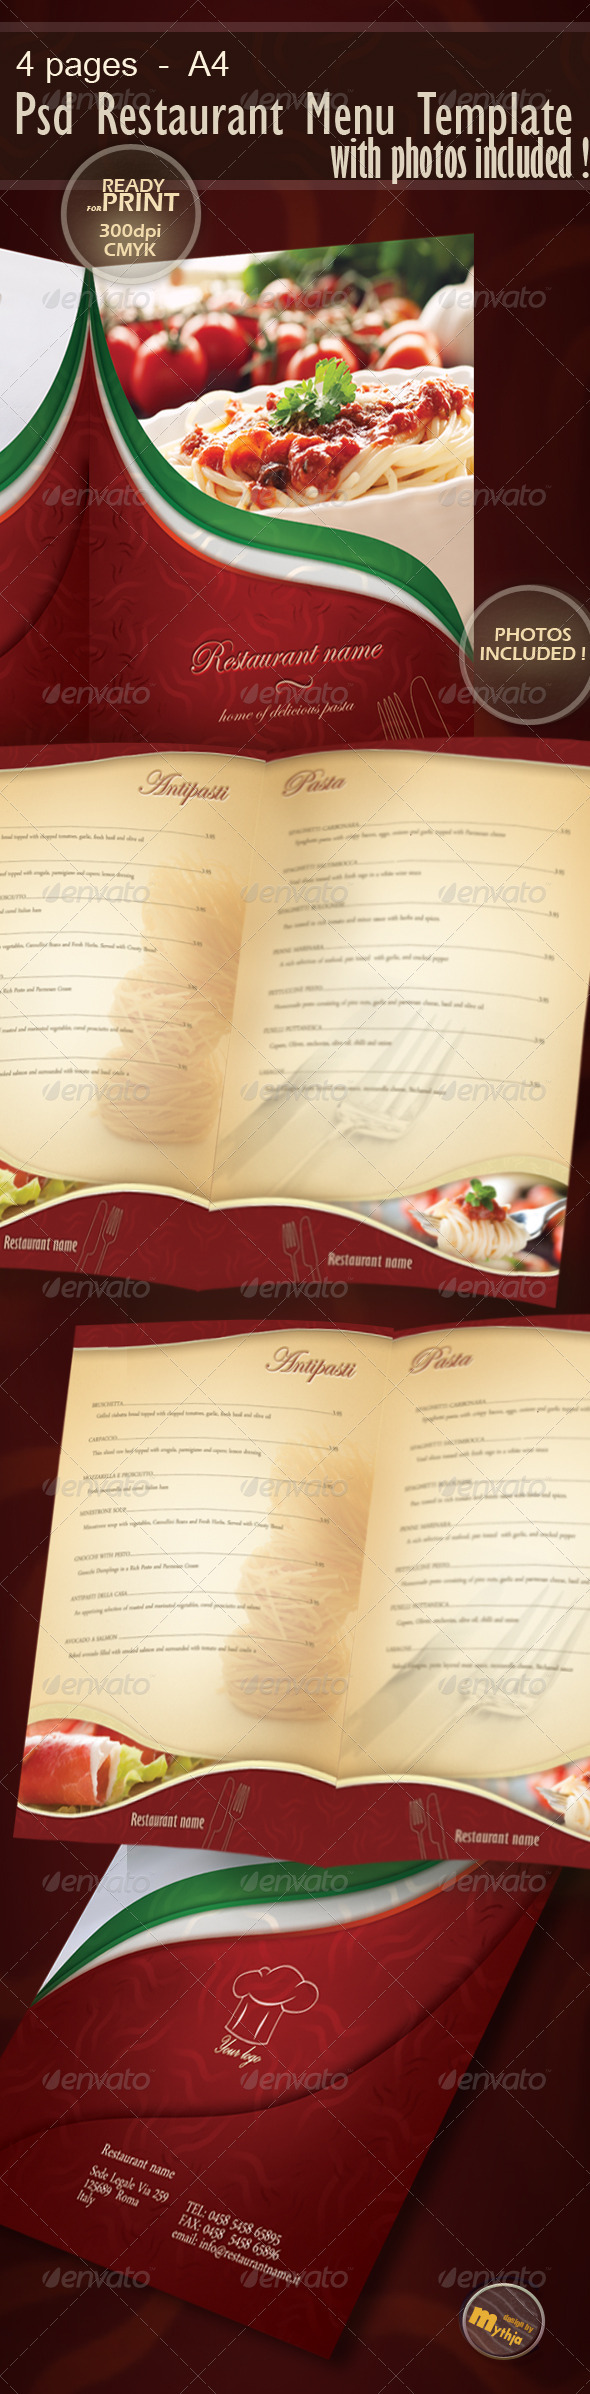 Restaurant Menu template with photos incuded - Food Menus Print Templates